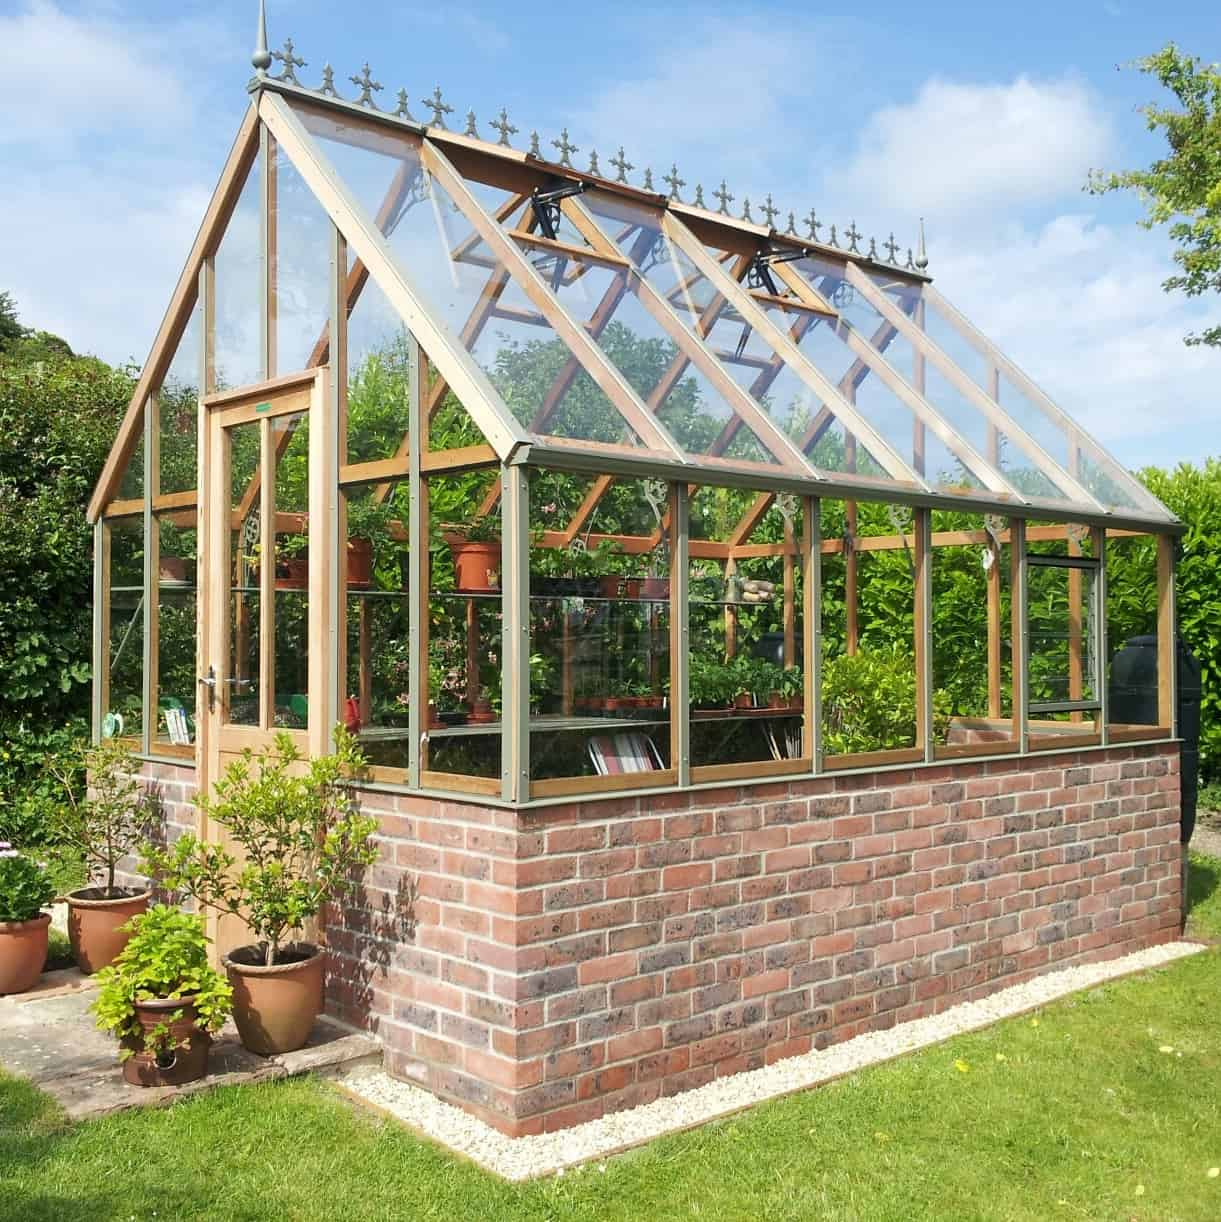 Ellesmere Dwarf Wall Victorian Cedar Greenhouse By Alton